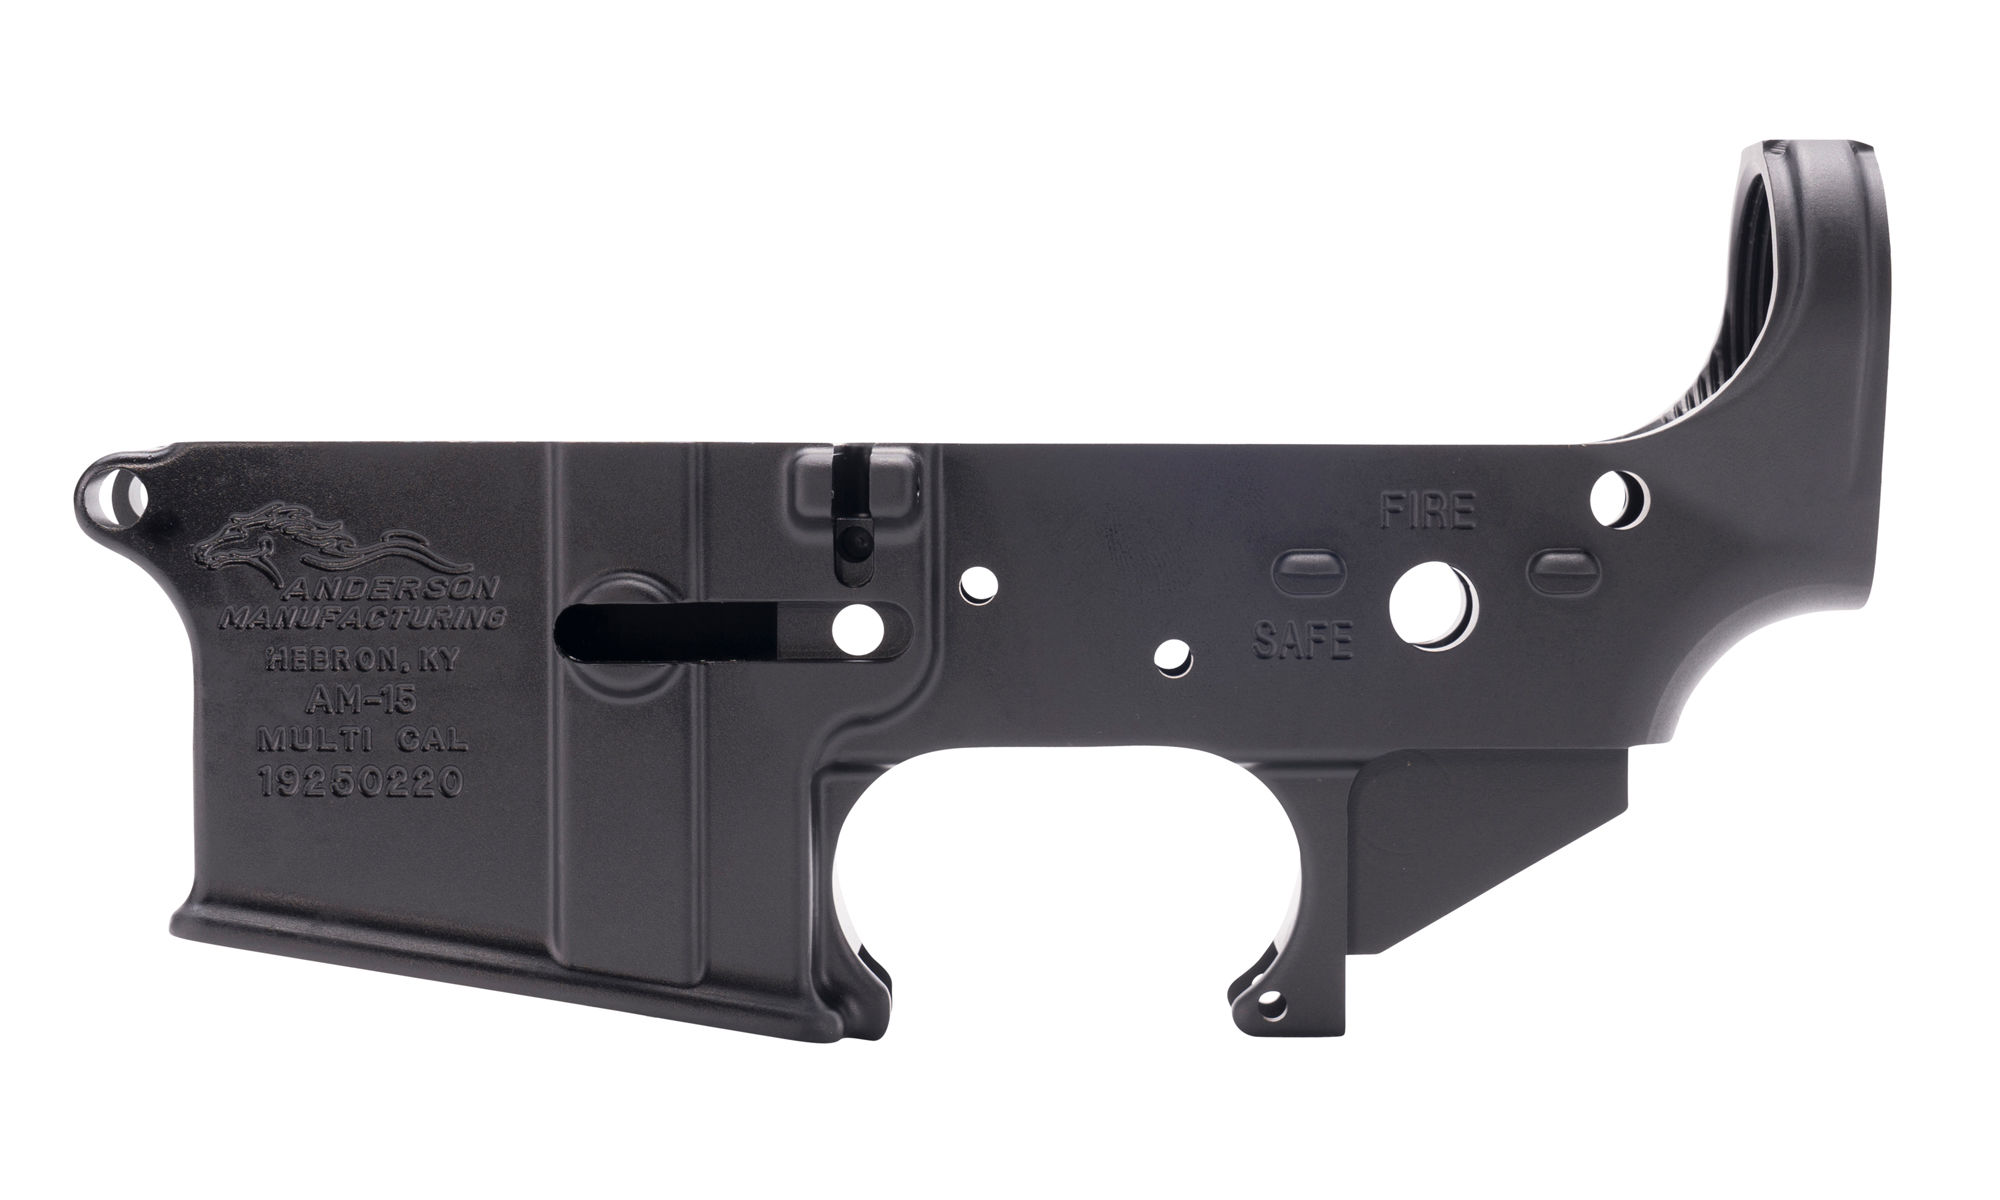 Anderson Manufacturing AM-15 Stripped Lower Receiver